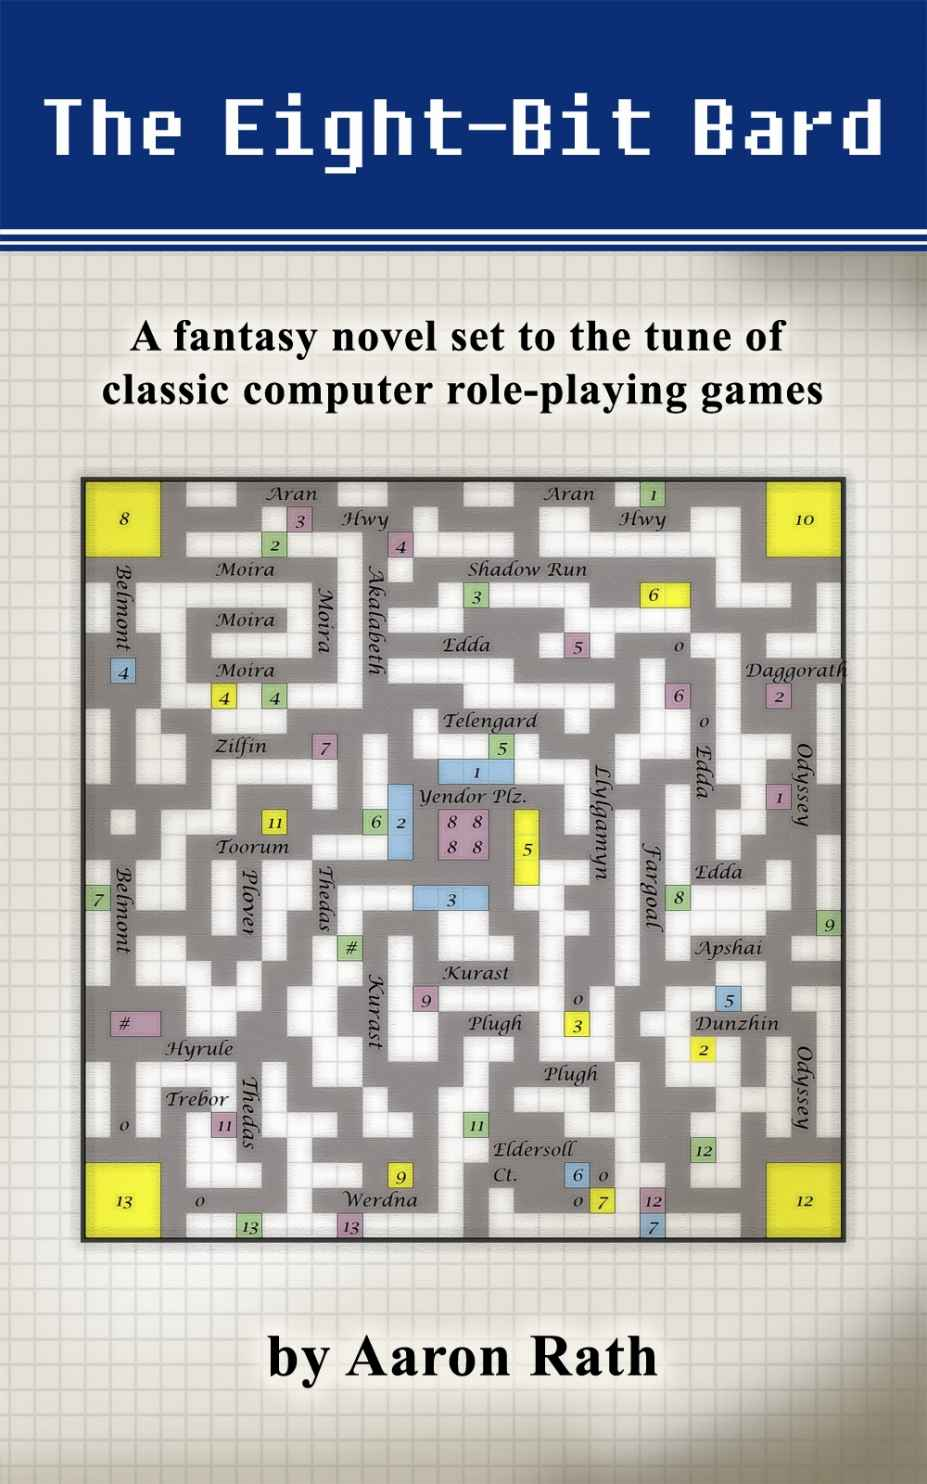 The Eight-Bit Bard: A fantasy novel set to the tune of classic computer role-playing games by Aaron Rath